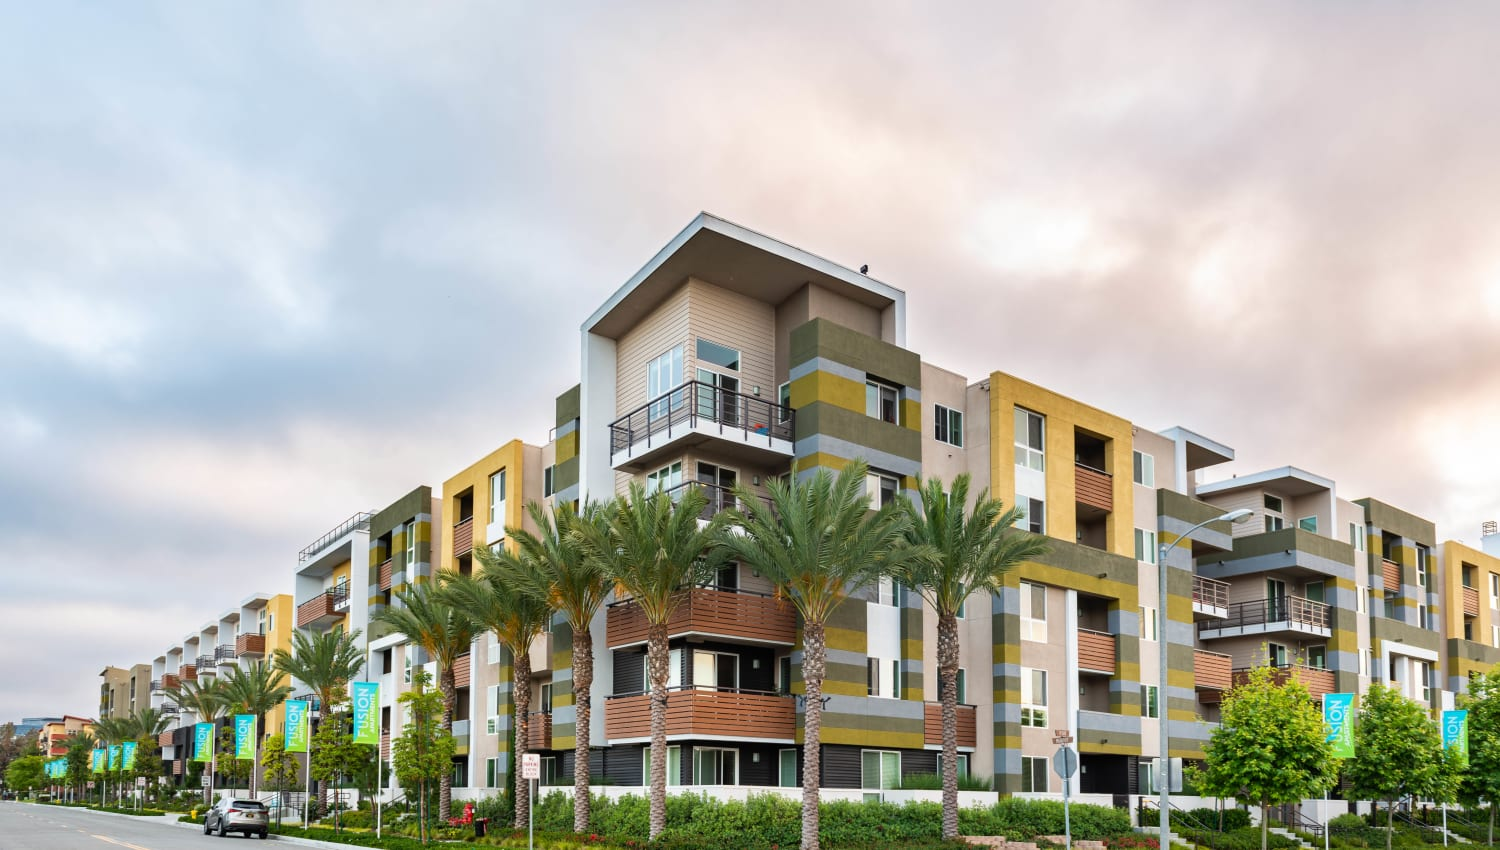 Exterior view of our luxury community at Fusion Apartments in Irvine, California